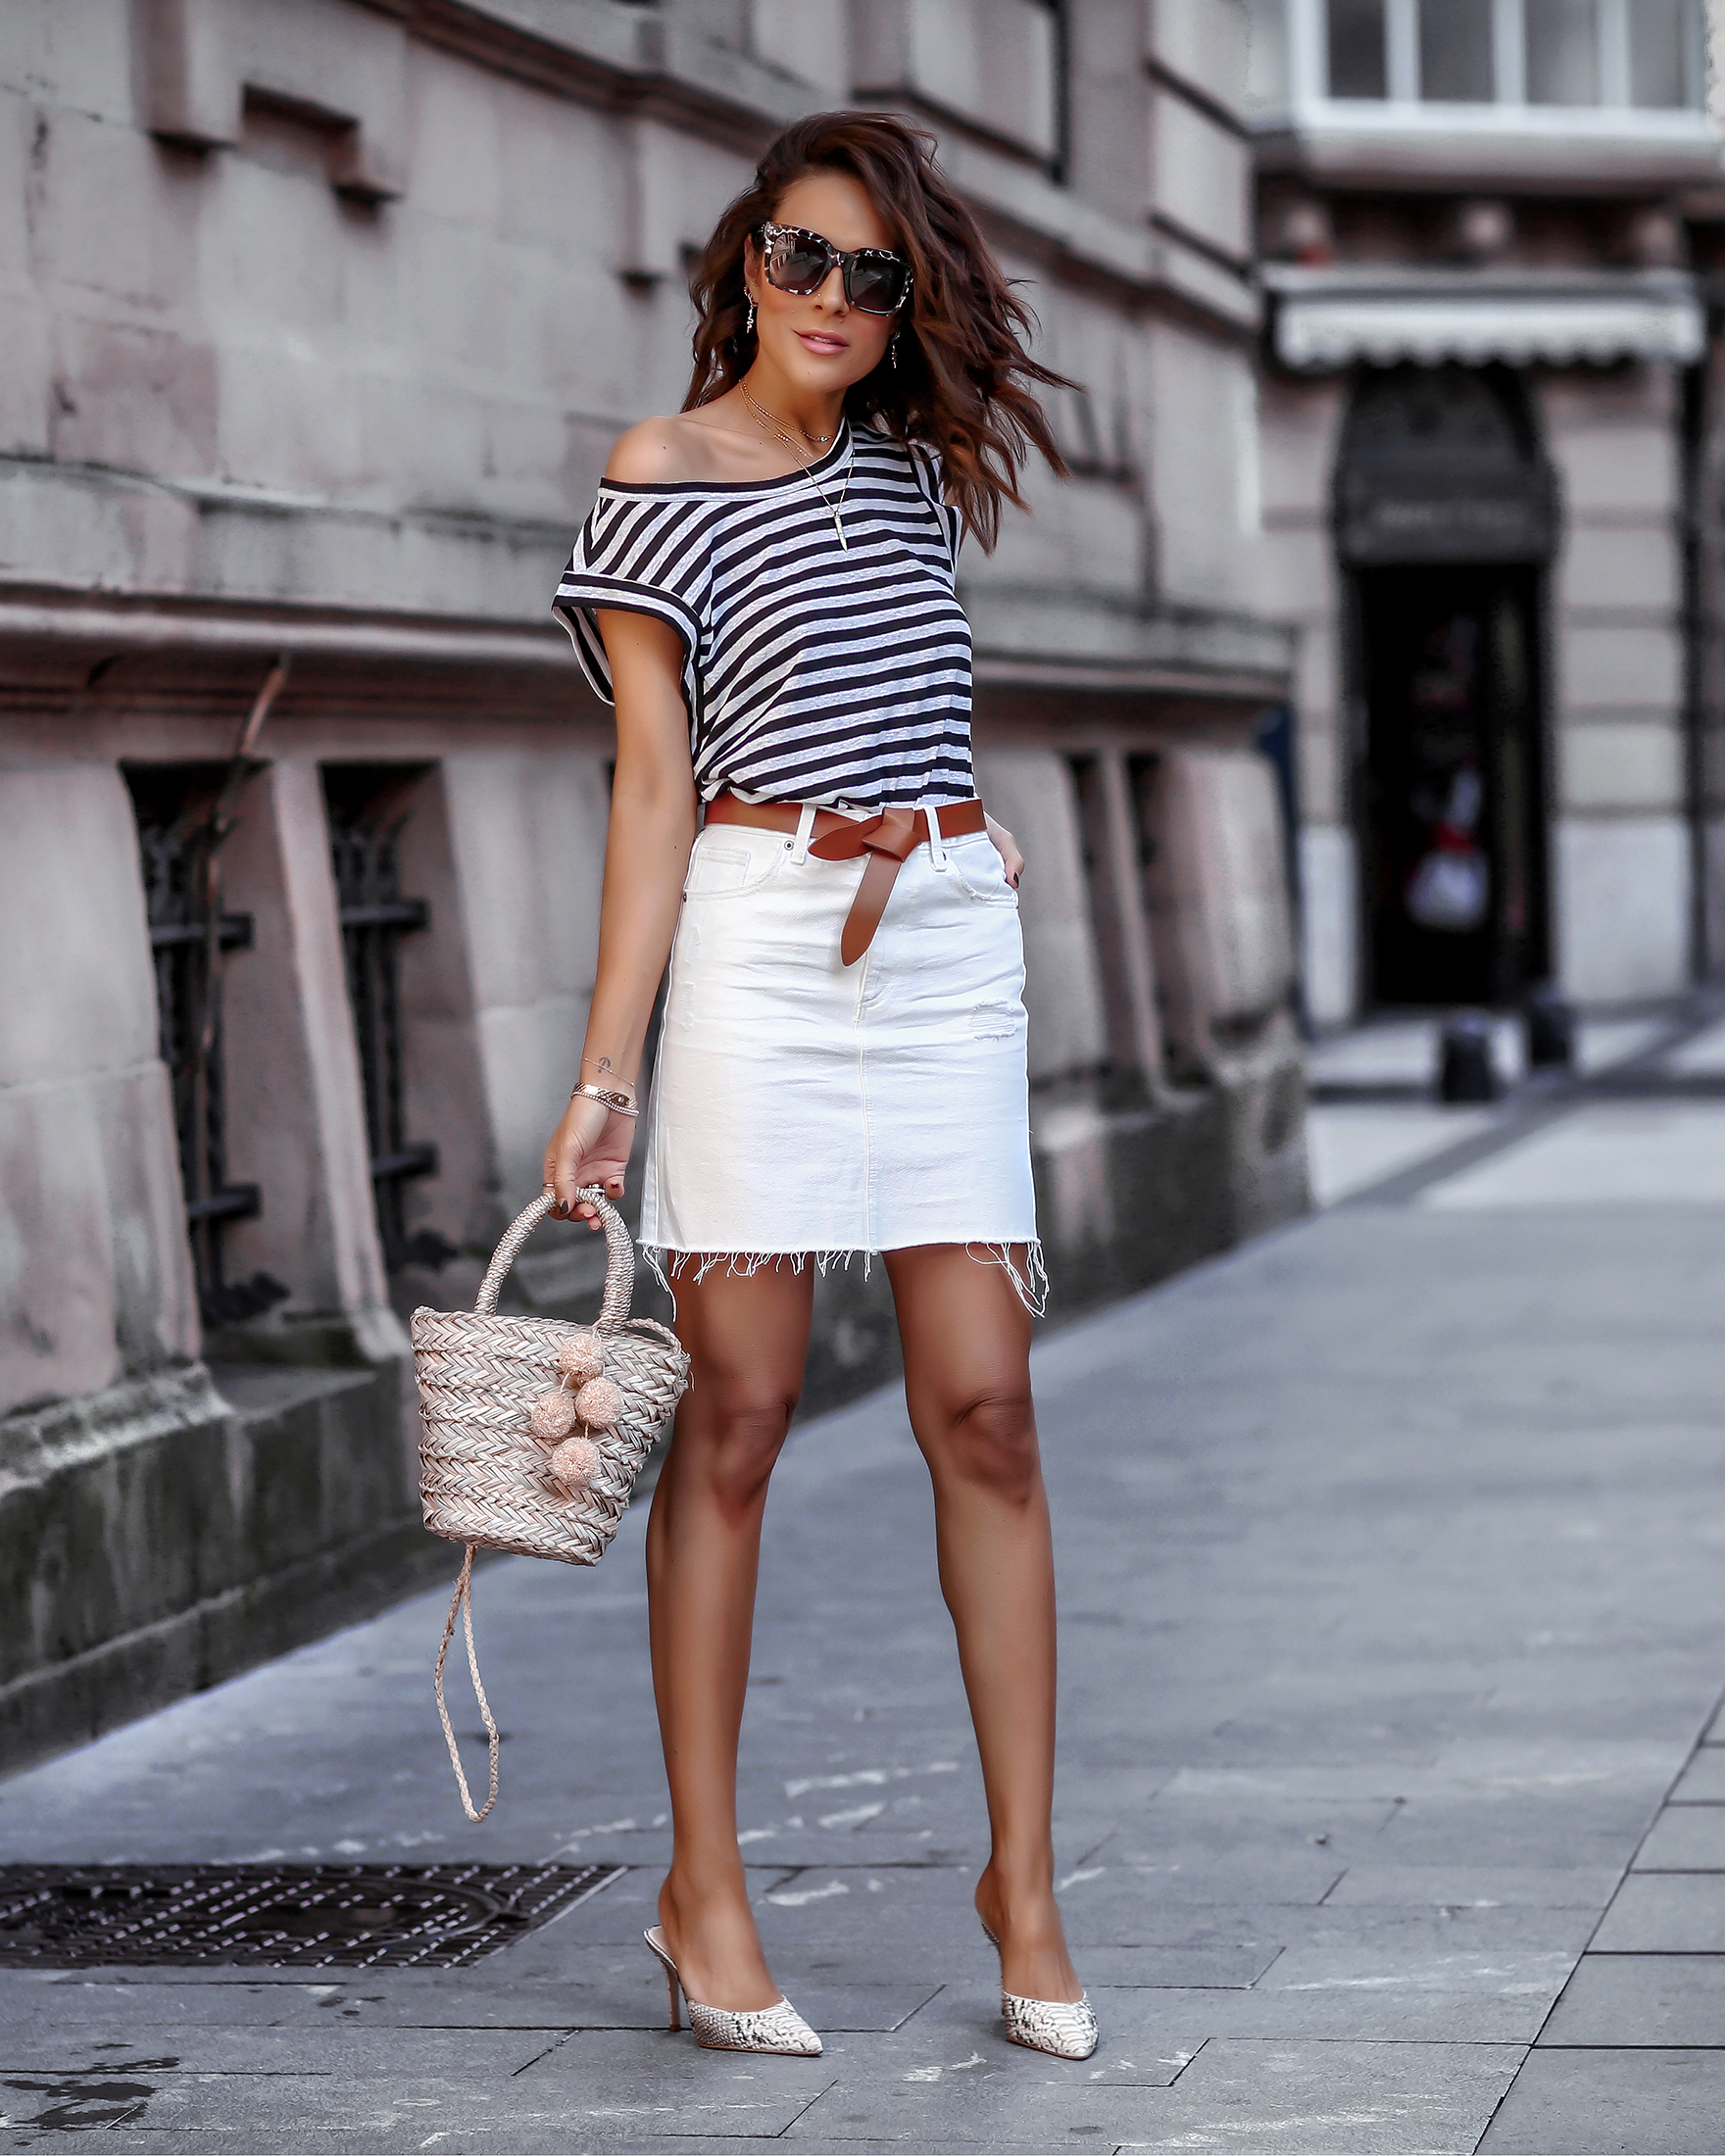 Brunette Woman in Striped Top in Summer Resort Style.